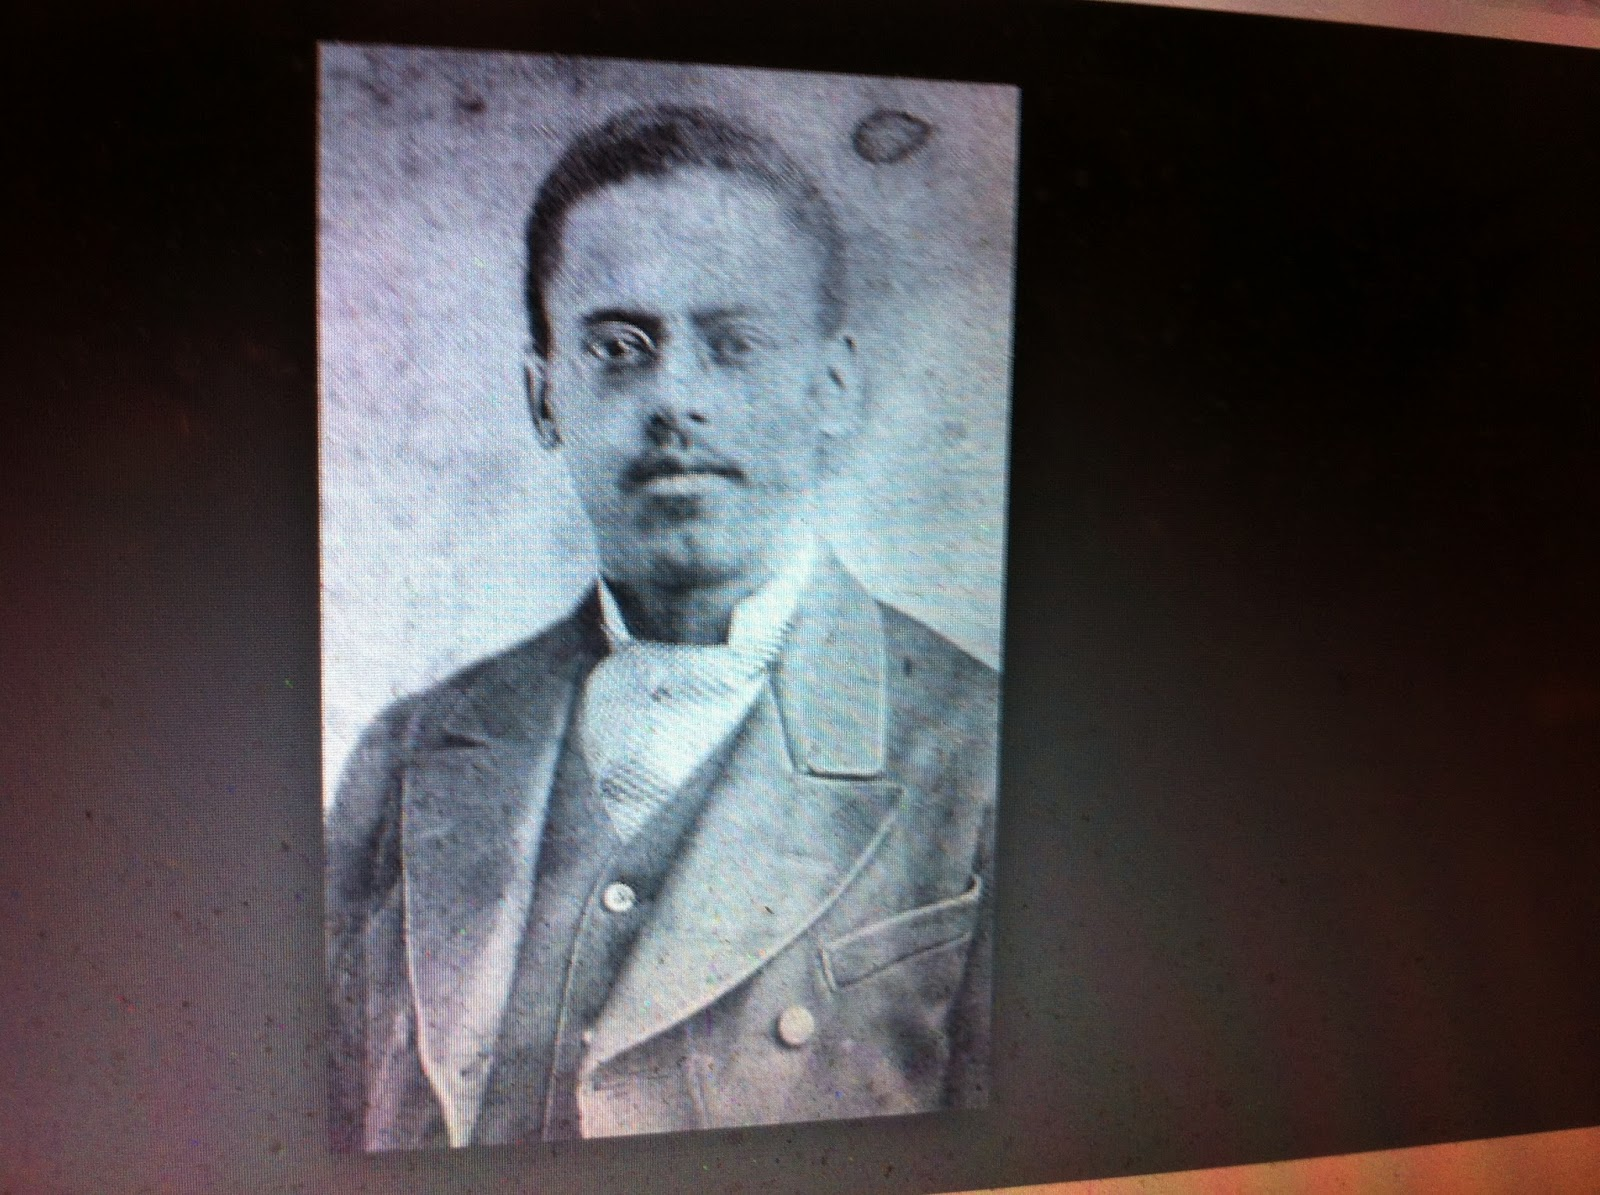 the life of lewis howard latimer Lewis howard latimer (september 4, 1848 – december 11, 1928) was an american inventor and draftsman early life lewis howard latimer was born in chelsea, massachusetts, on september 4, 1848, the youngest of four children of rebecca latimer (1826–1910) and george latimer (july 4, 1818 – may 29, 1896.